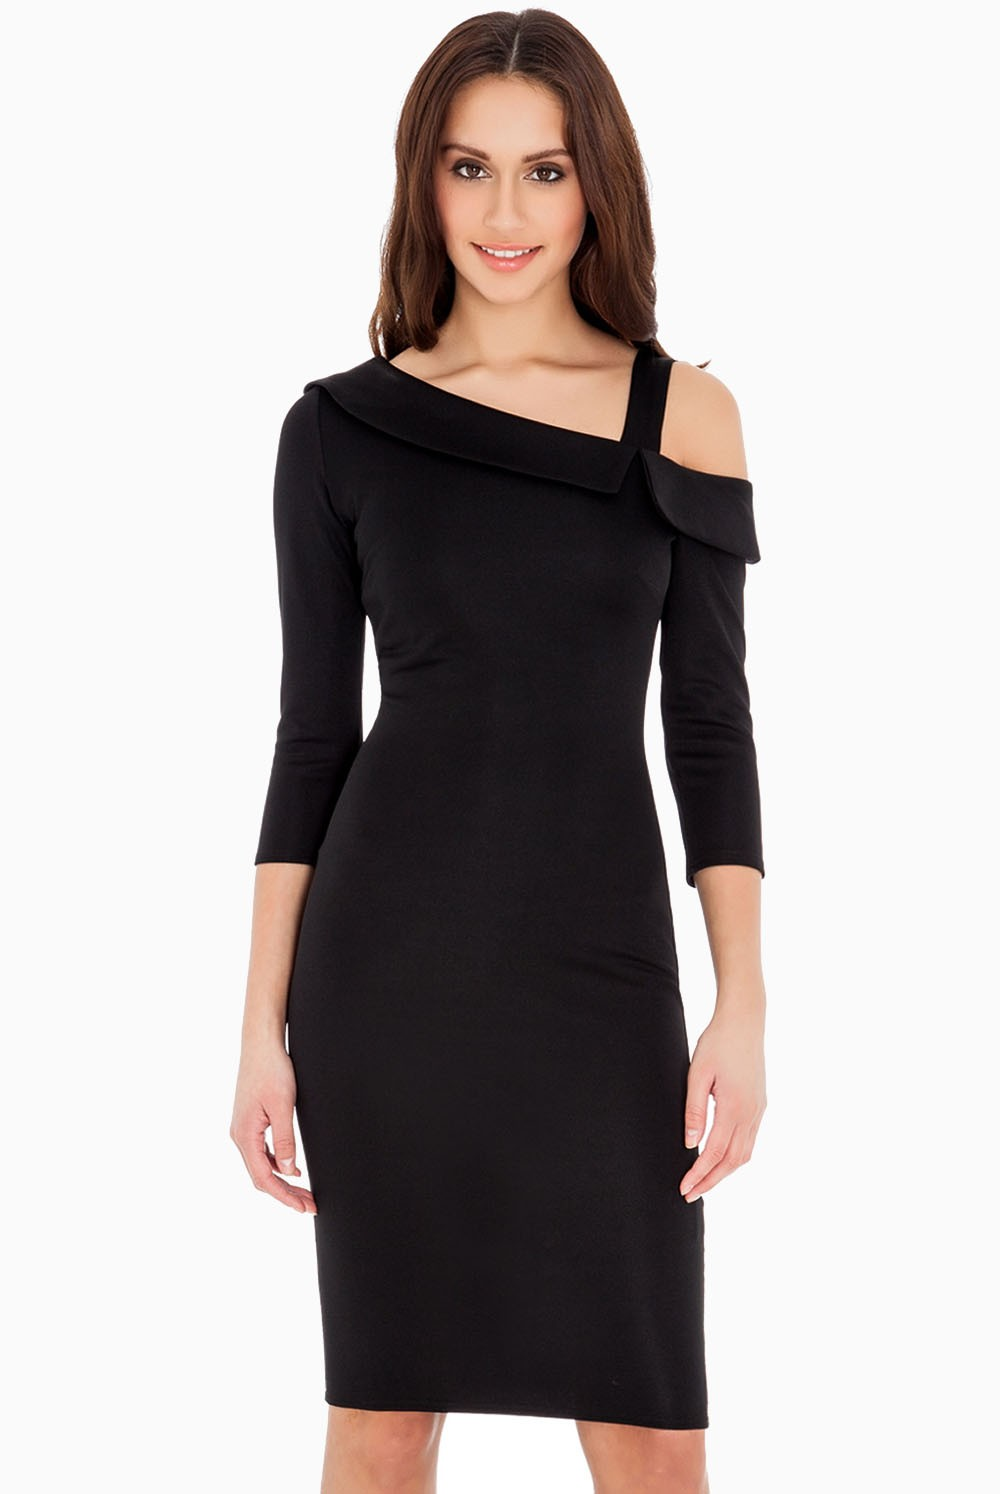 Pearl Fitted Midi Dress in Black | iCLOTHING